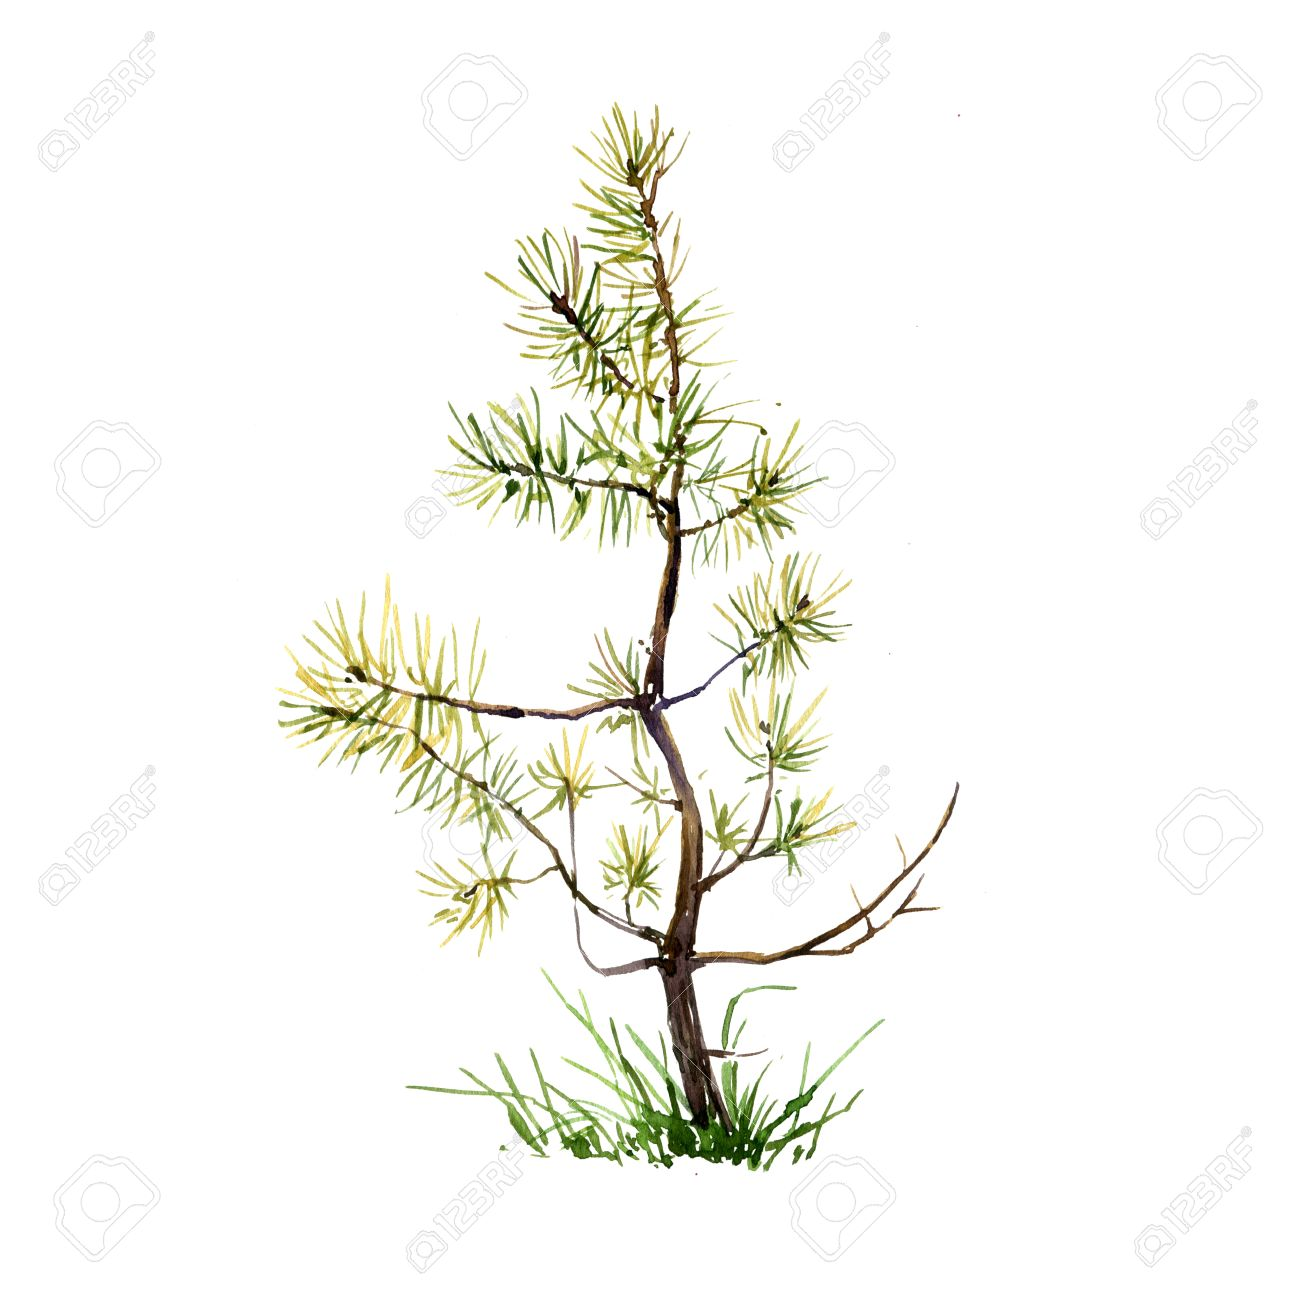 1300x1300 Young Pine Tree And Grass Drawing By Watercolor, Aquarelle Sketch